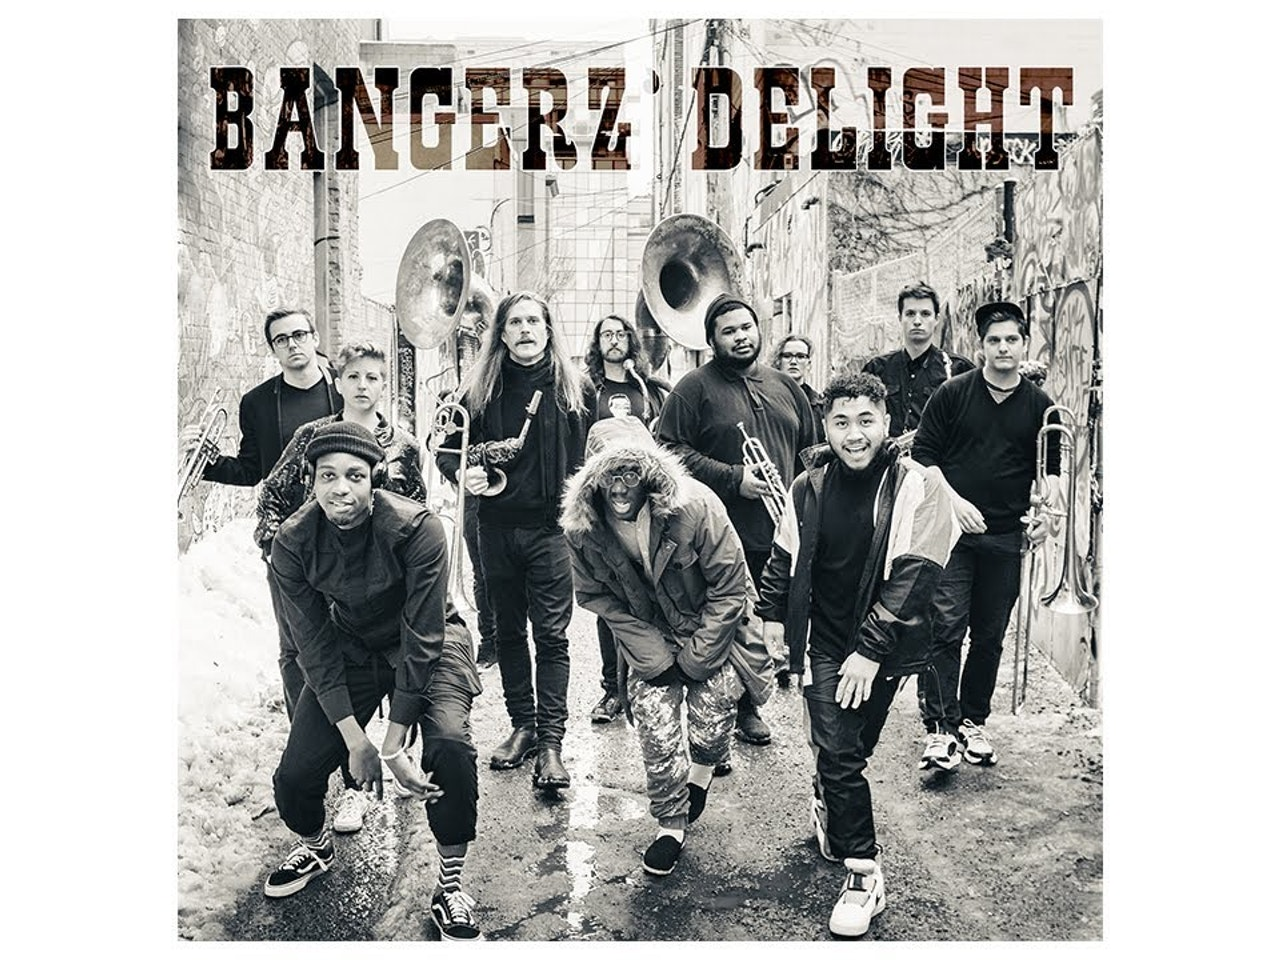 Bangerz Brass - Bangerz' Delight (The Grand Return) [Official Video]